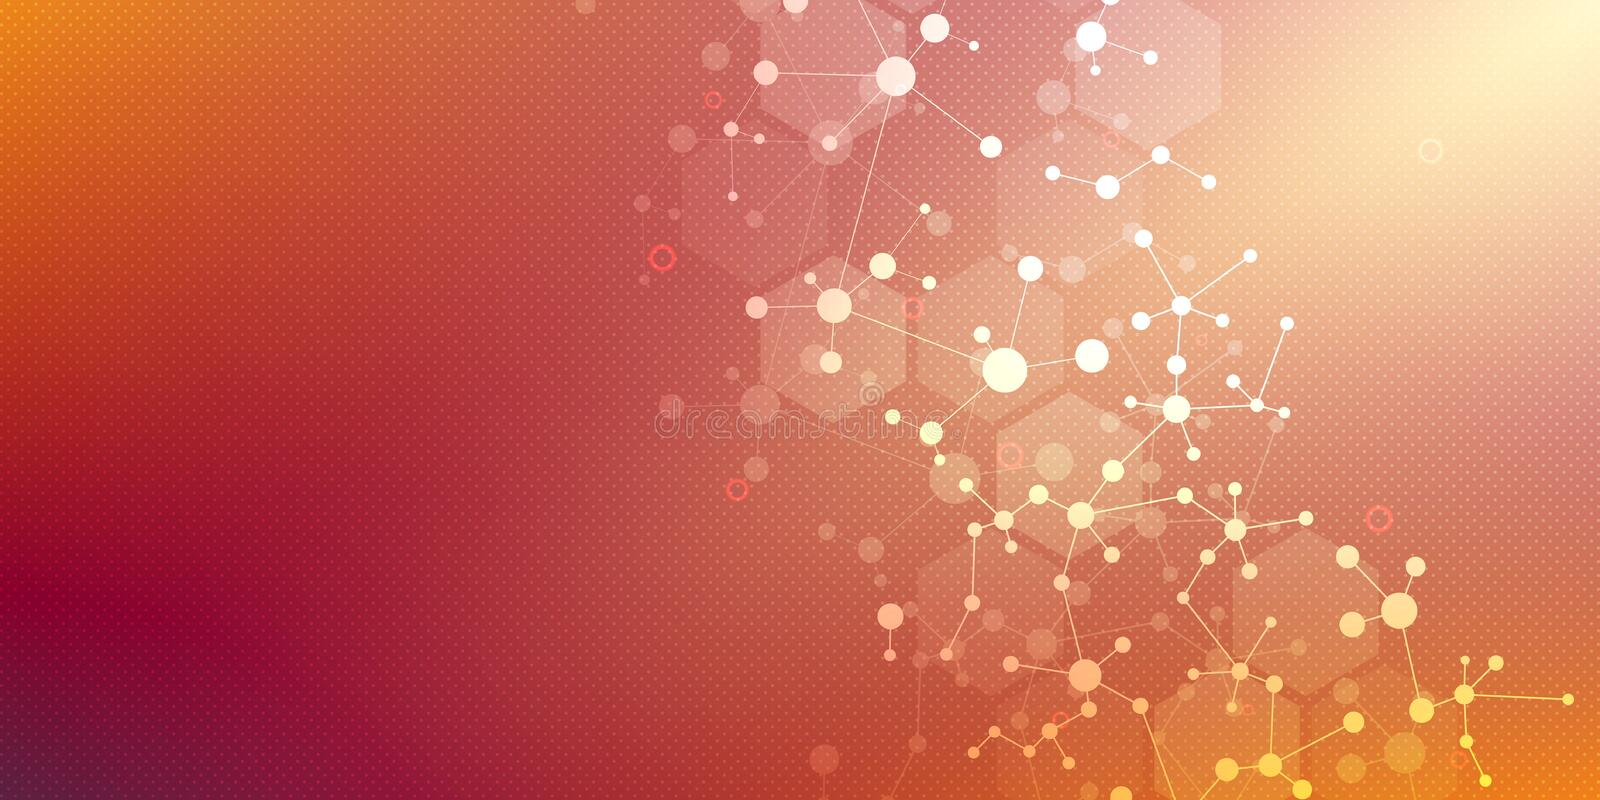 Molecular structure background and communication. Abstract background with molecule DNA. Medical, science and digital vector illustration